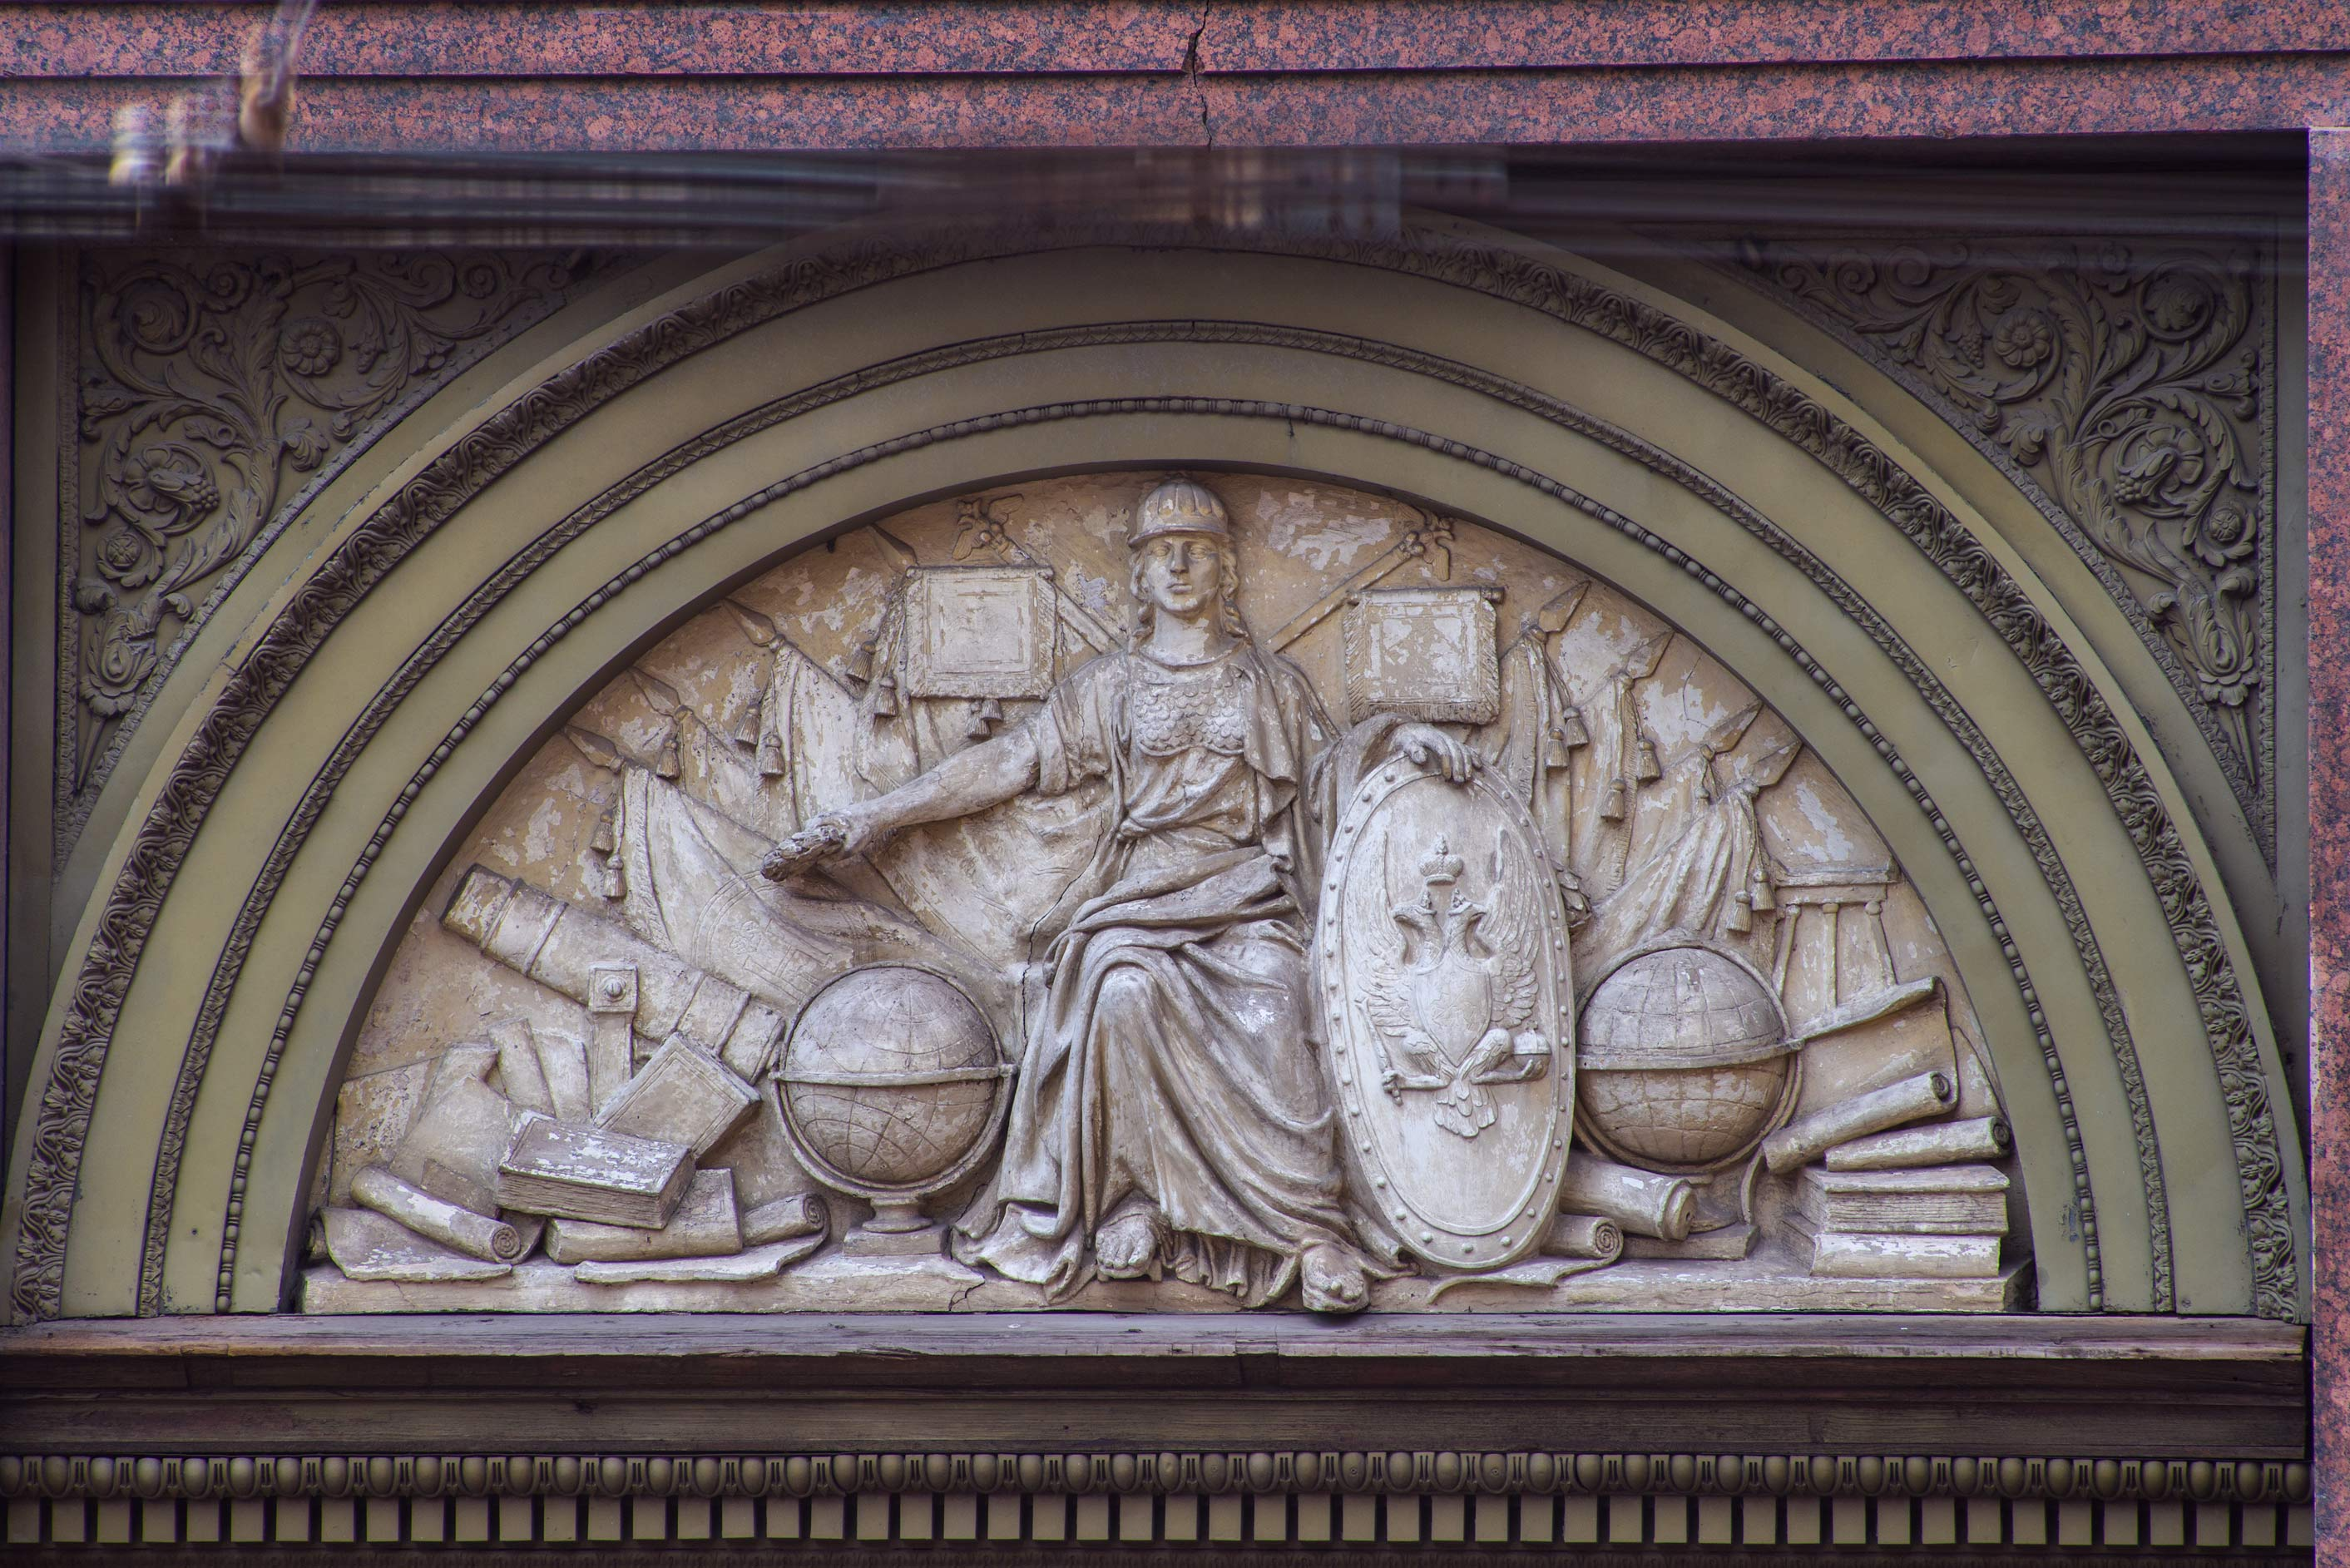 Relief over a door of House of Free Economic Society. St.Petersburg, Russia